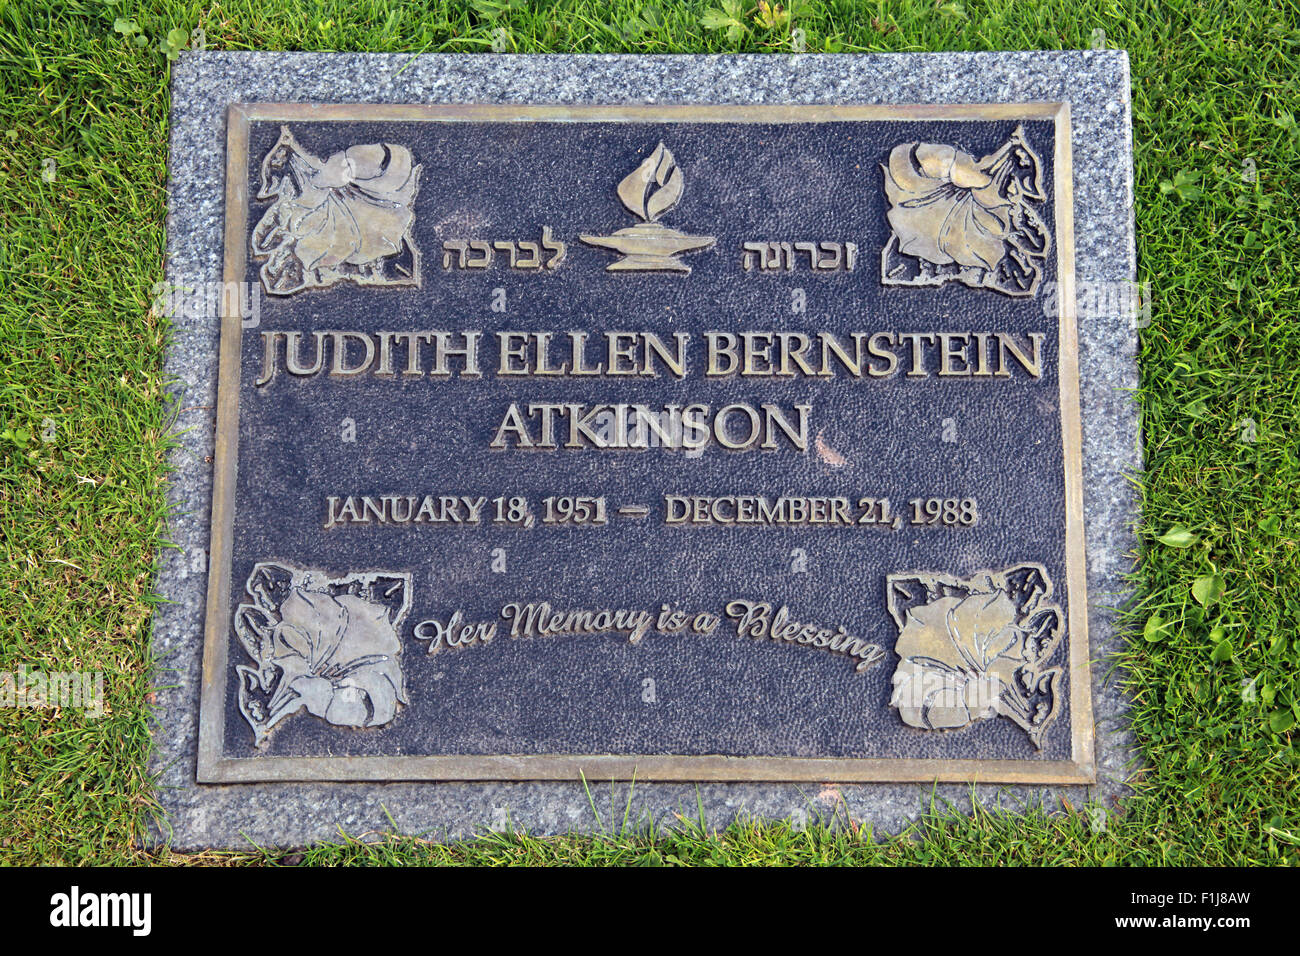 Ellen Bernstein Atkinson of Jewish religion,Scotland,Lodge,Visitors,Centre,DLVC,Trust,Lockerbie,Memorial,Remembrance,Scotland,Victims,Pan,Am,PanAm,flight,103,bomb,bombing,terrorist,December,1988,attack,crash,dead,site,21/12/1988,270,victims,Scottish,Town,conspiracy,blast,Tundergarth,Room,New York,GoTonySmith,Lodge,Visitors,Centre,DLVC,Trust,Lockerbie,Memorial,Scotland,Victims,Pan,Am,PanAm,flight,103,bomb,bombing,terrorist,December,1988,attack,crash,dead,site,21/12/1988,270,victims,Scottish,Town,conspiracy,blast,Tundergarth,Room,garden,of,Dryfesdale,Cemetery,news,Cultural,understanding,remembering,innocent,transatlantic,Frankfurt,Detroit,Libyan,Libya,Colonel Muammar Gaddafi,civil,case,compensation,terrorism,PA103,30,30years,years,Syracuse,University,SU,family,collections,Story,Archive,Archives,40,35,Timeline,saga,disaster,air,Scholars,program,programs,remembrance,Clipper Maid of the Seas,N739PA,Boeing,727,plane,aircraft,Scotland,UK,United Kingdom,GB,Great Britain,resting,place,Buy Pictures of,Buy Images Of,New York,al megrahi,30 Years